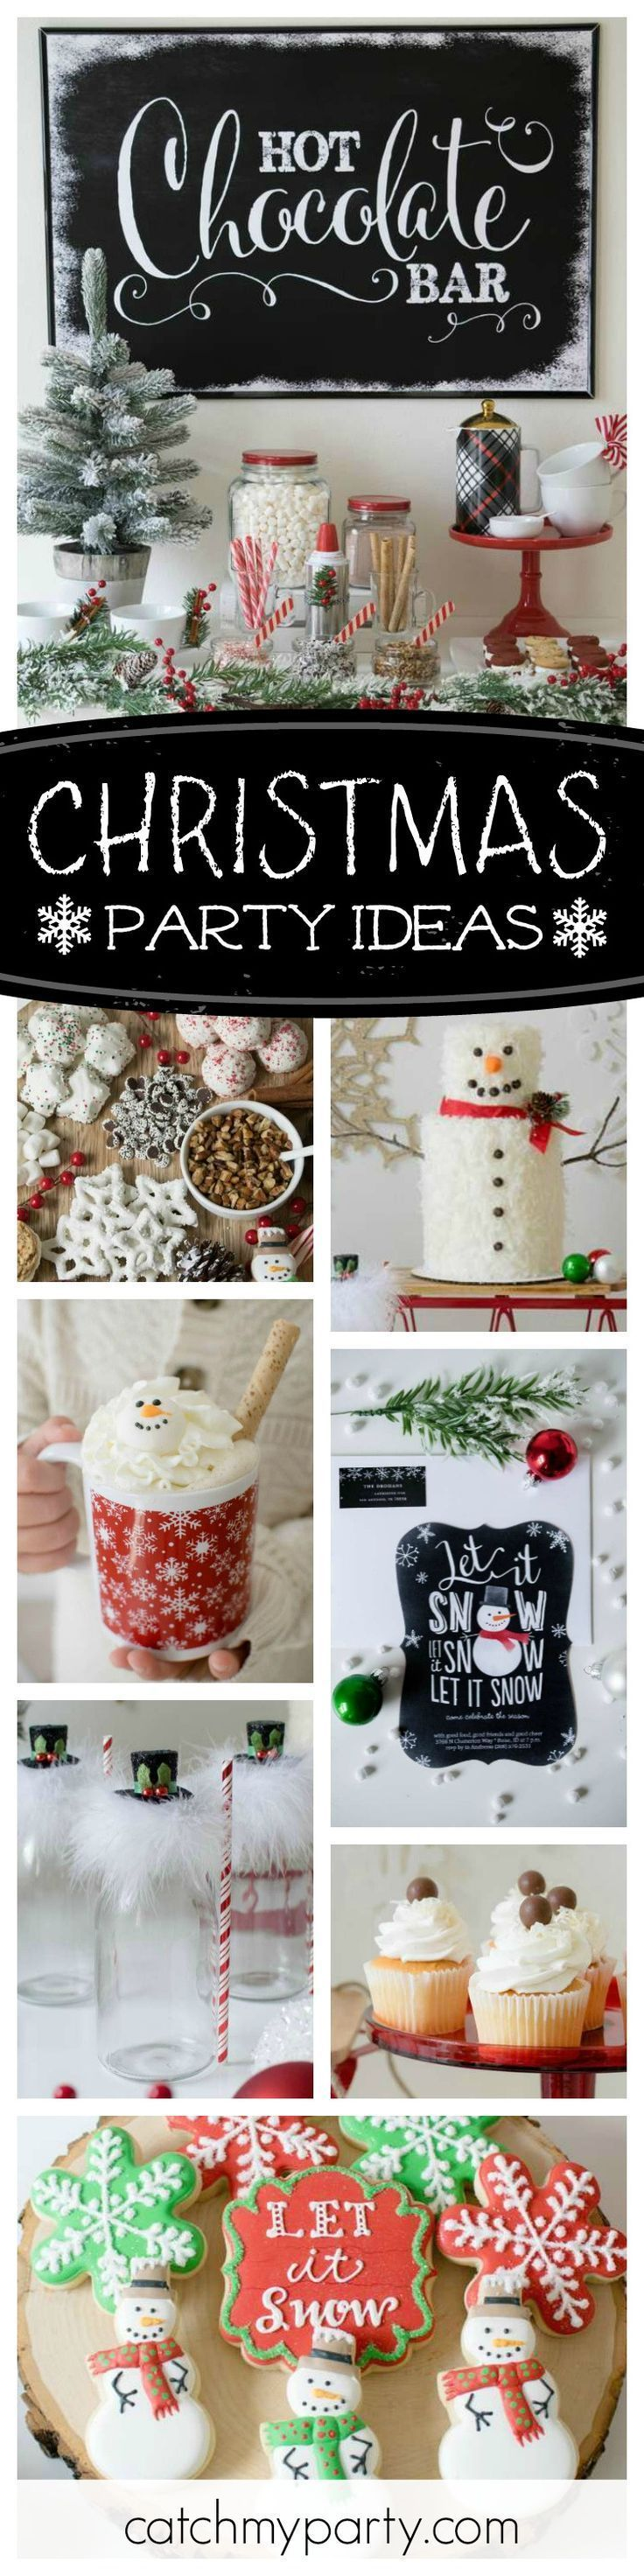 Check out this awesome Christmas party! The Snowman Christmas cake is amazing!! See more party ideas and share yours at CatchMyParty.com